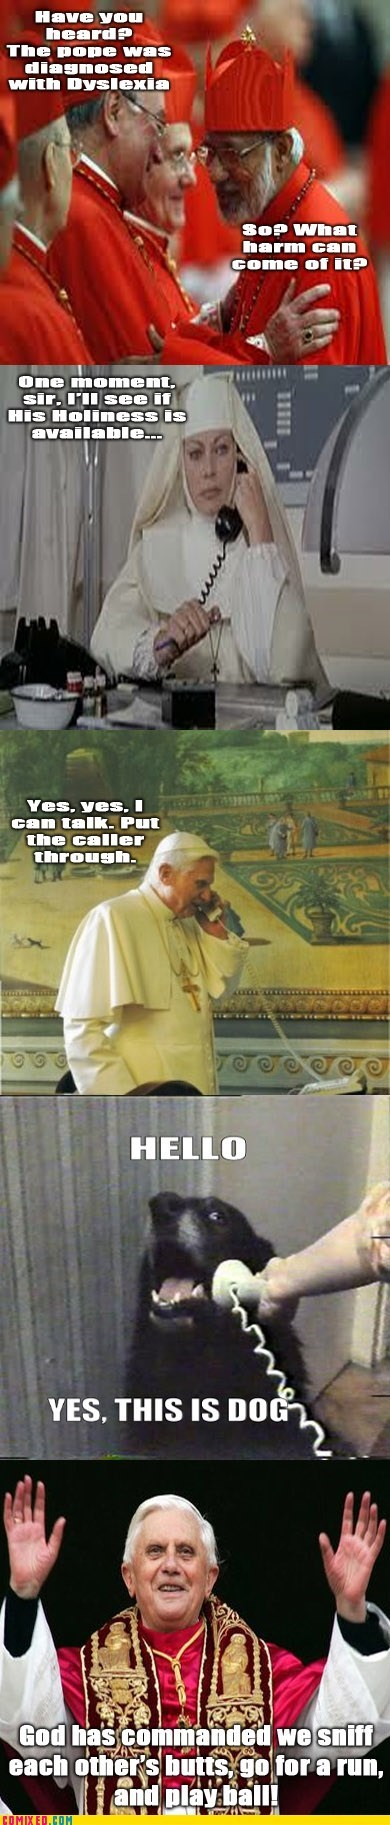 dyslexia god pope sniffing butts the internets this is dog - 6372564736